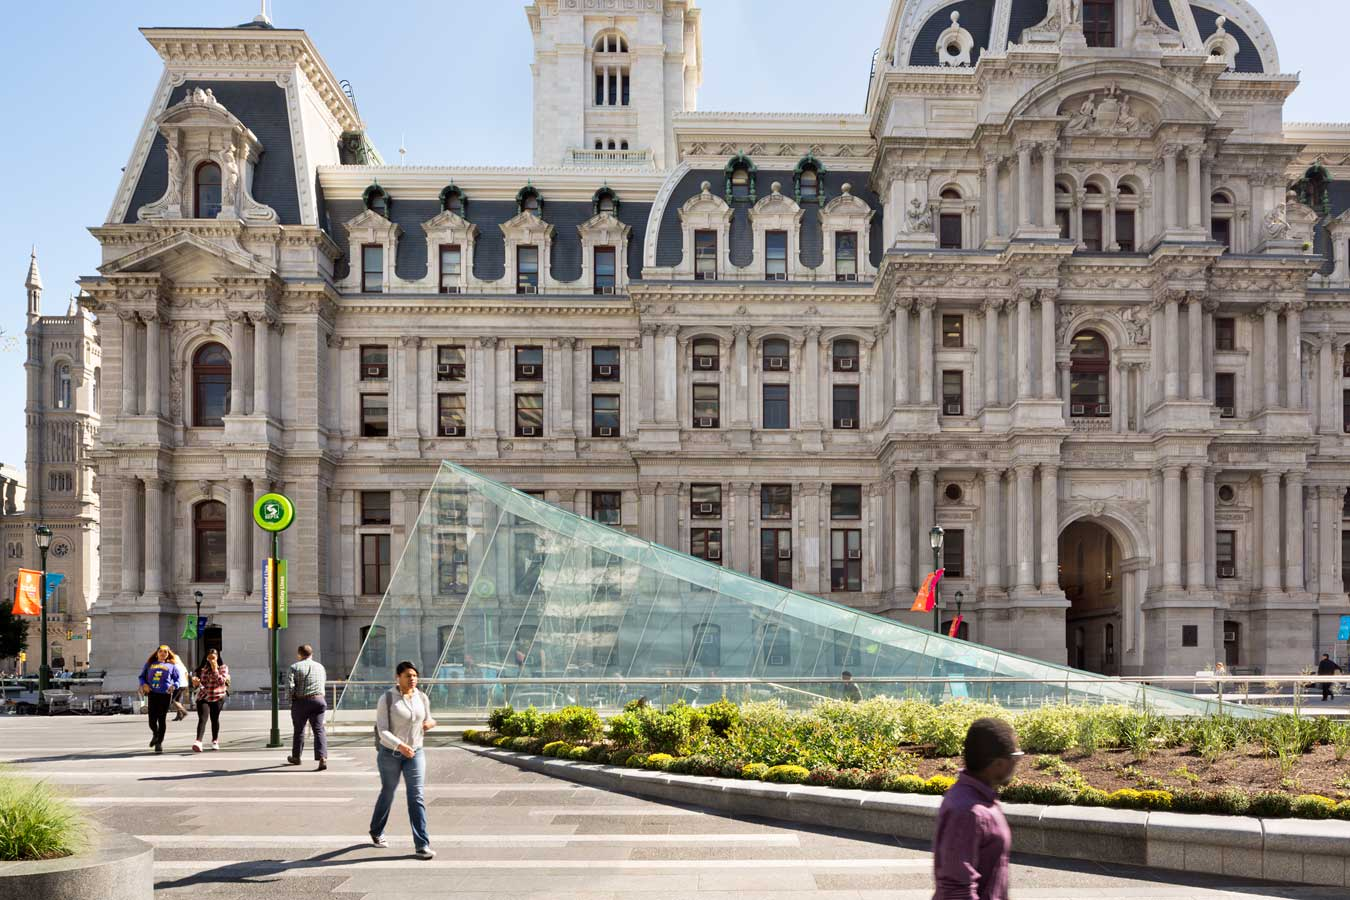 <p>The landscape and architecture work together to enhance and frame the views of City Hall, providing a renewed sense of place and arrival. <br><small>&copy; James Ewing Photography</small></p>